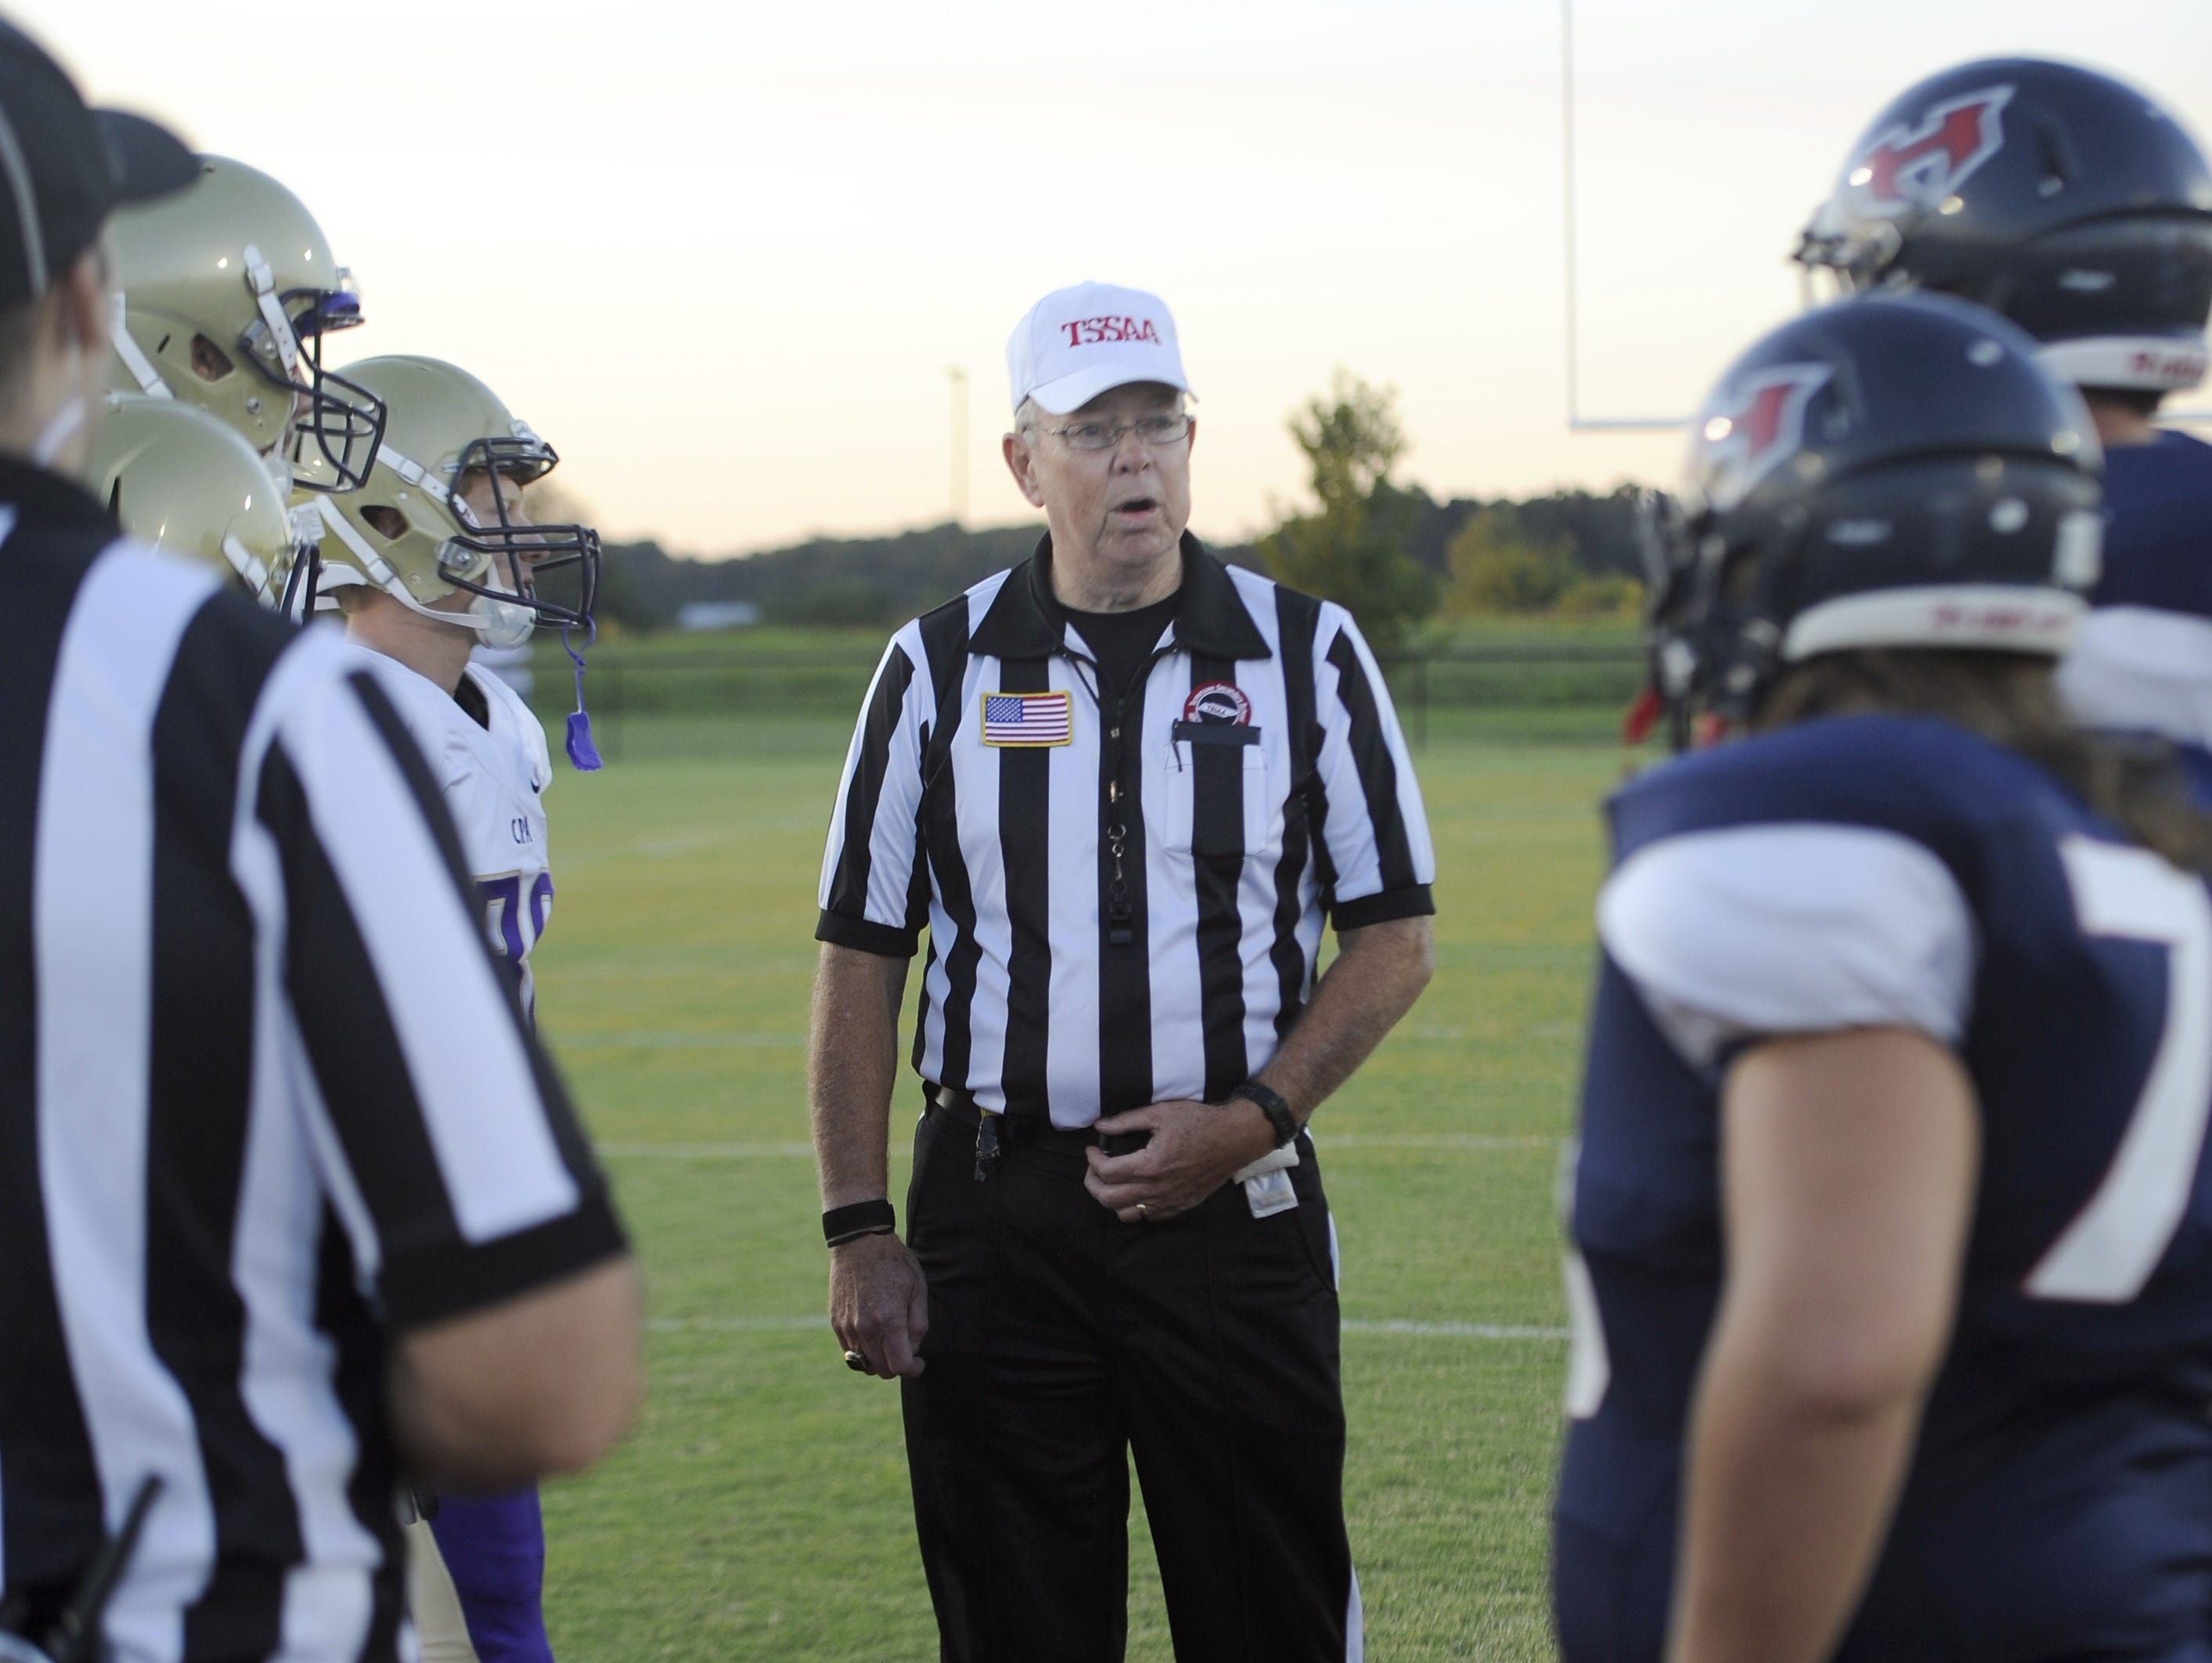 North Middle Football Officials Association referee Jody Swearingen talks with the captains prior to kickoff of last Friday's Christ Presbyterian Academy/White House Heritage game.